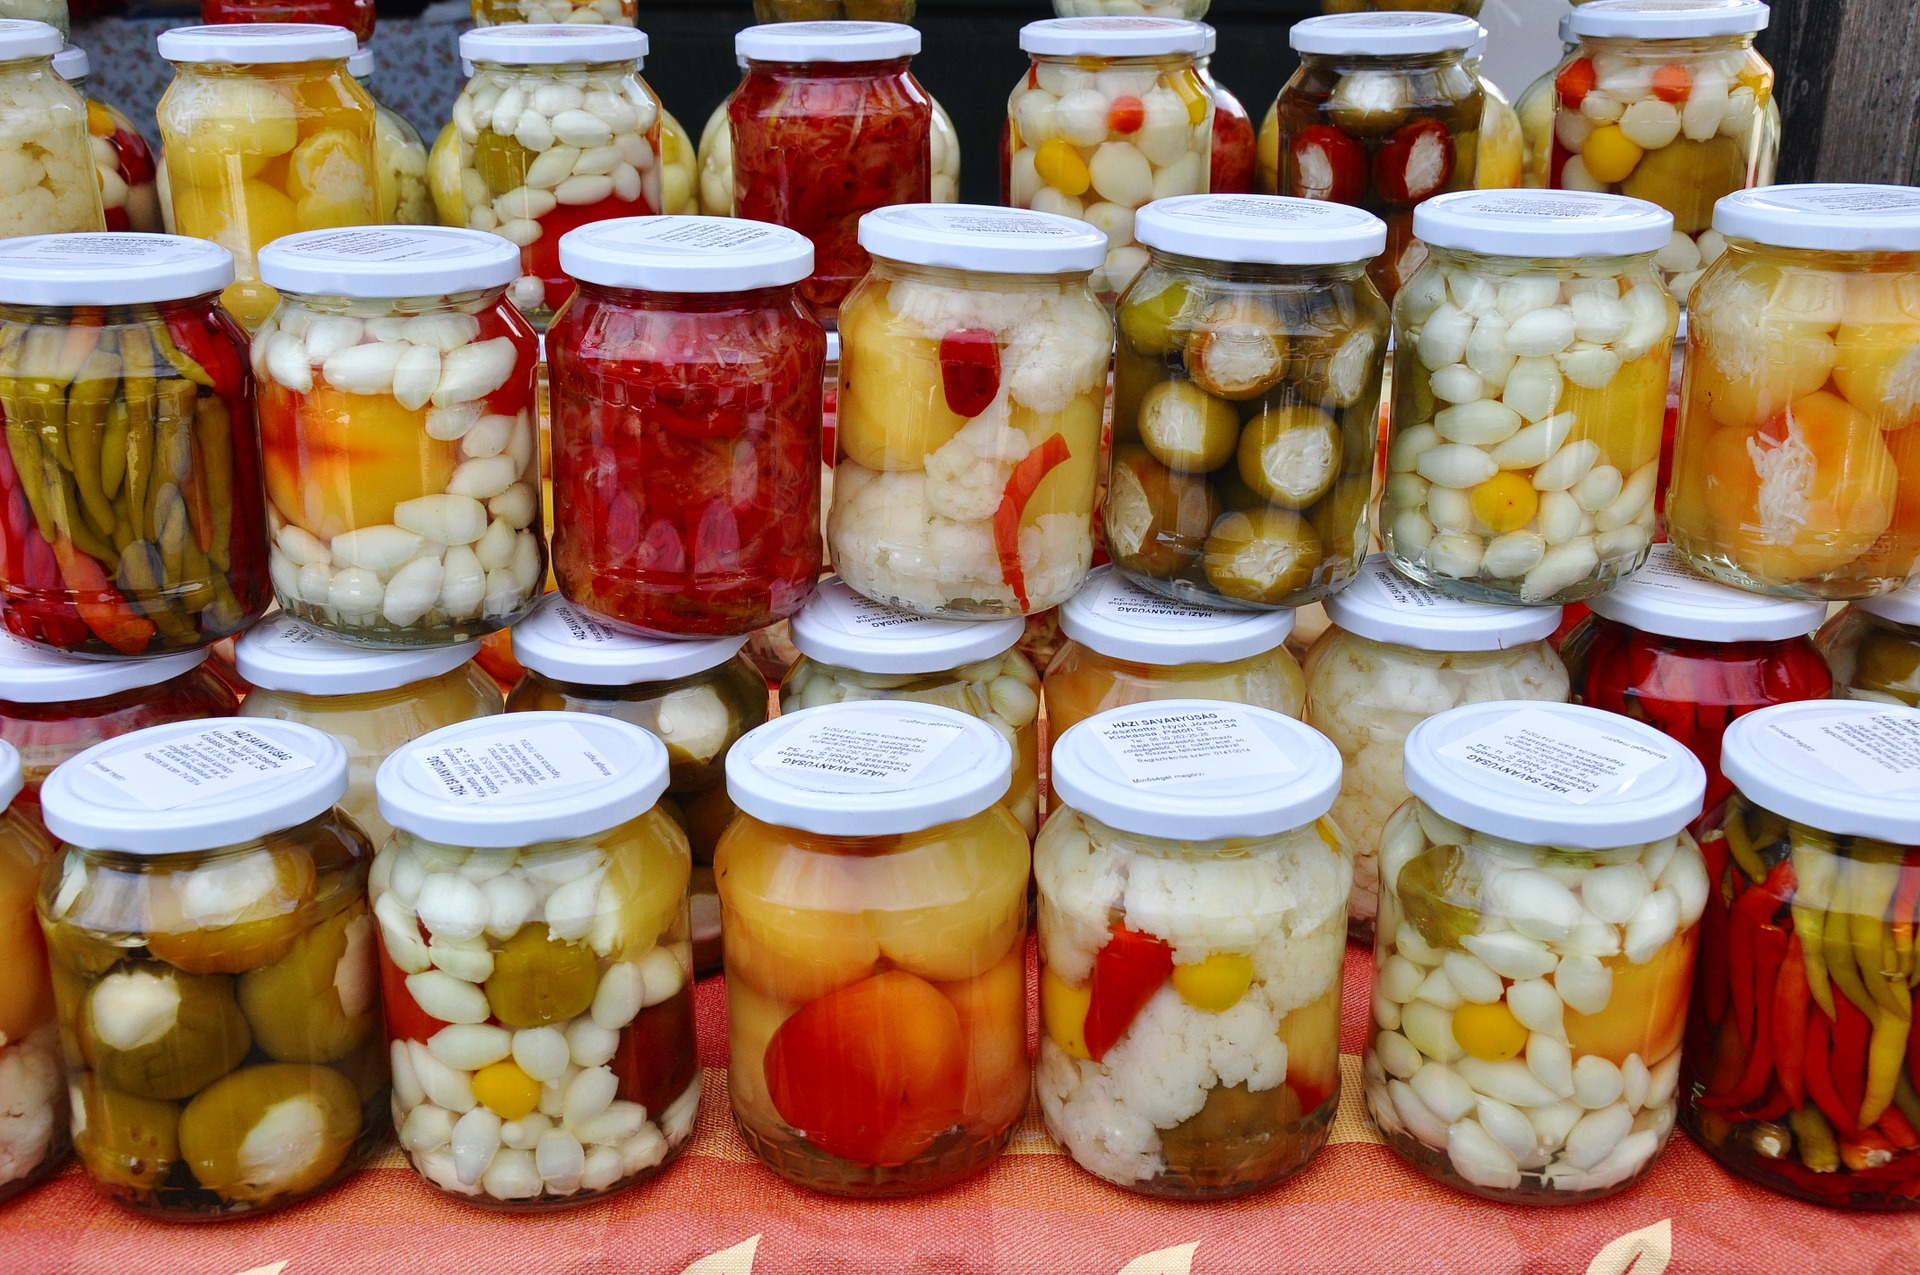 You can actually pickle just about anything, including celery, beets, Brussels sprouts, and tomatoes.